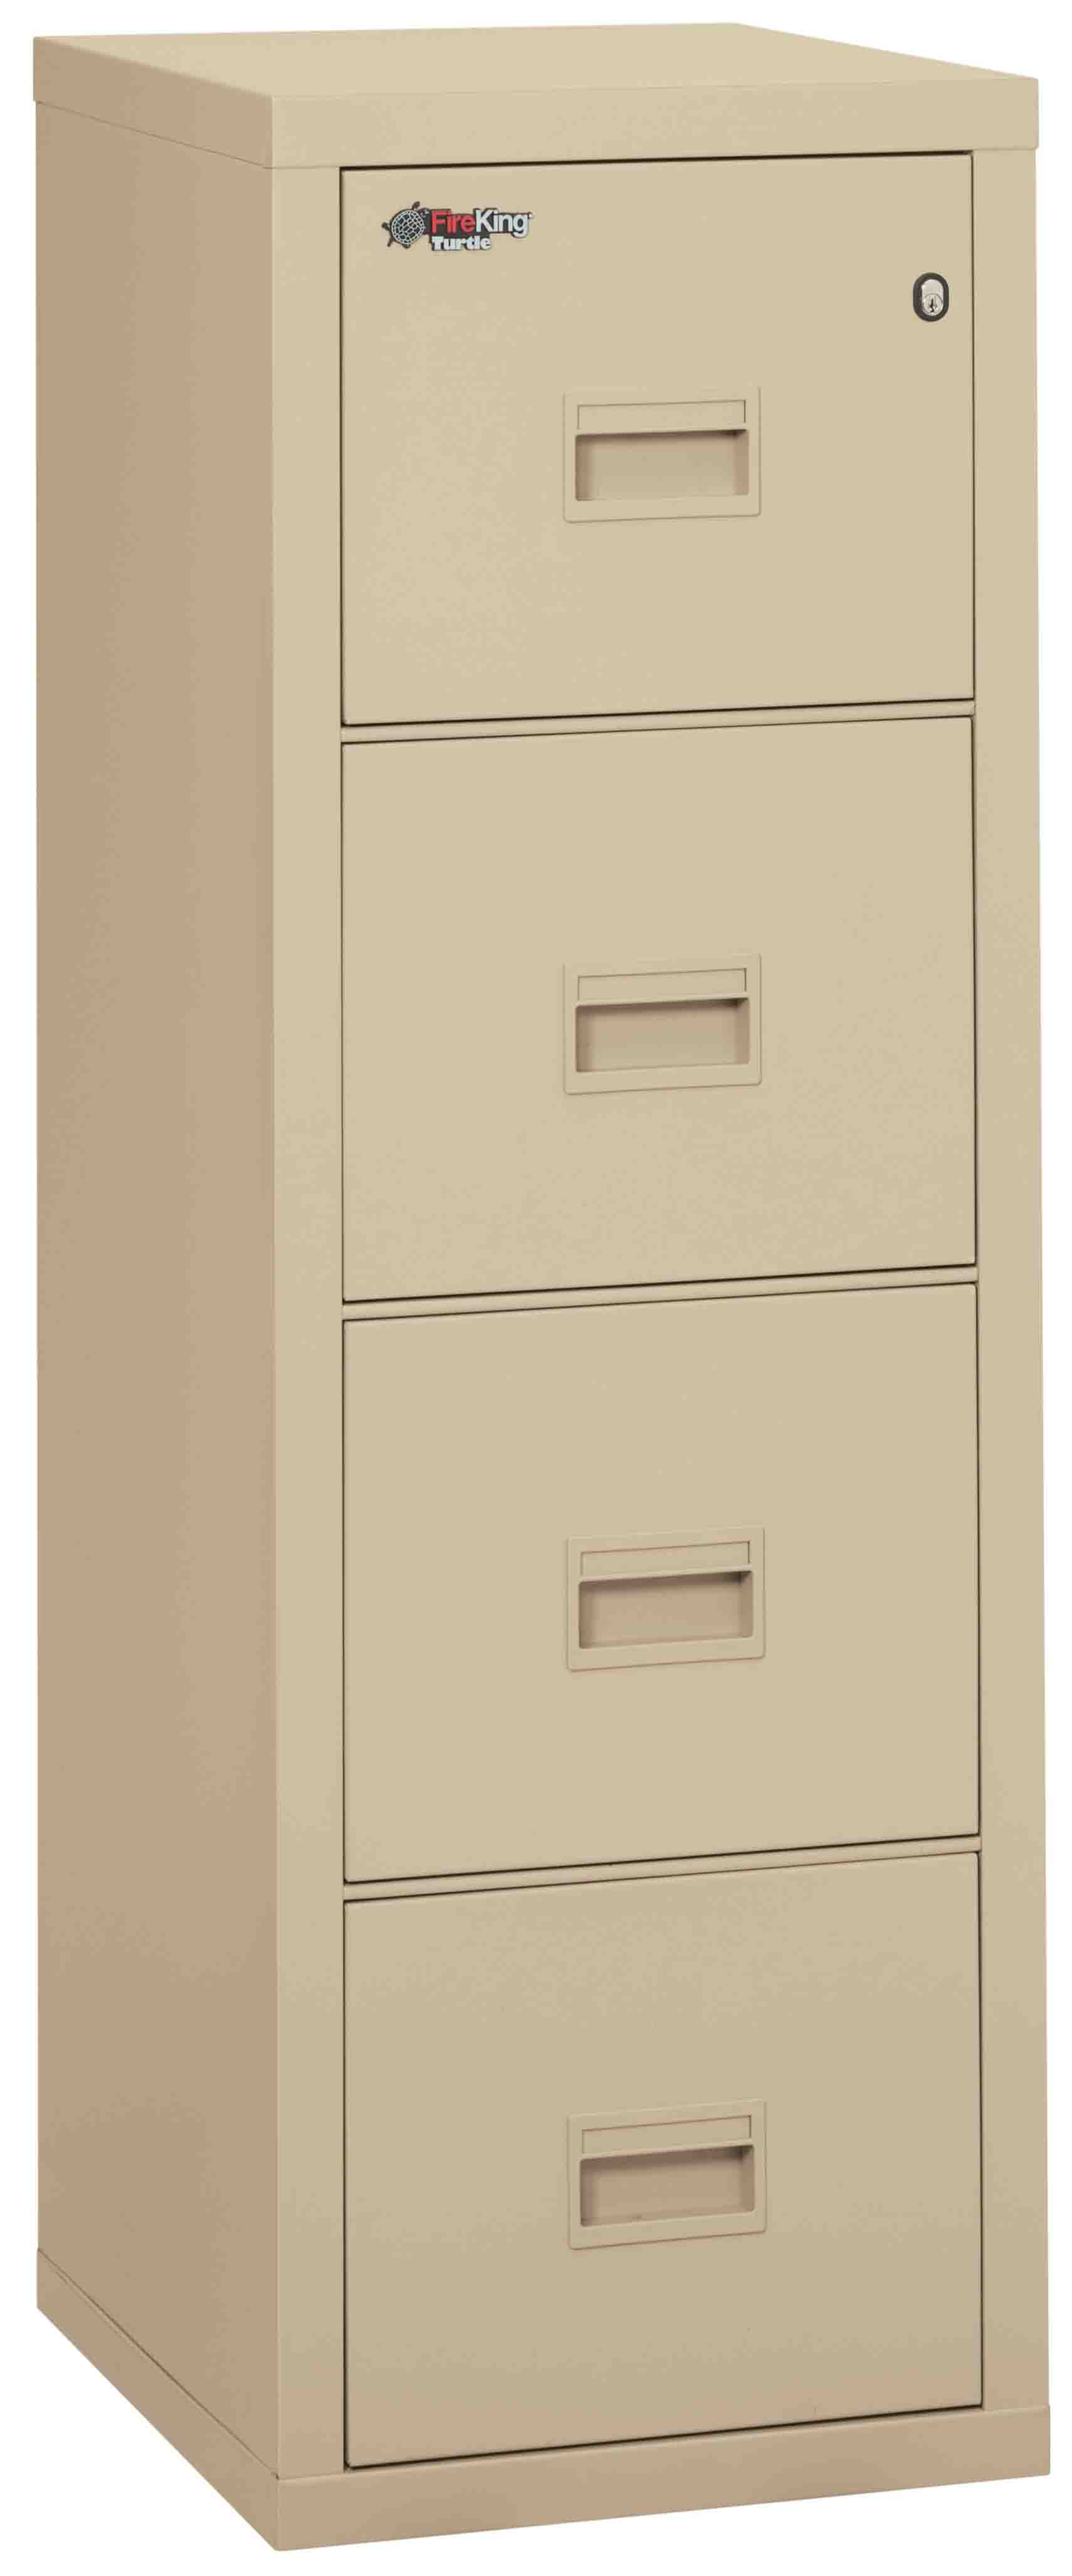 Fire King 4r1822 C Turtle Fireproof File Cabinets 4 Drawer 1 Hour Rating